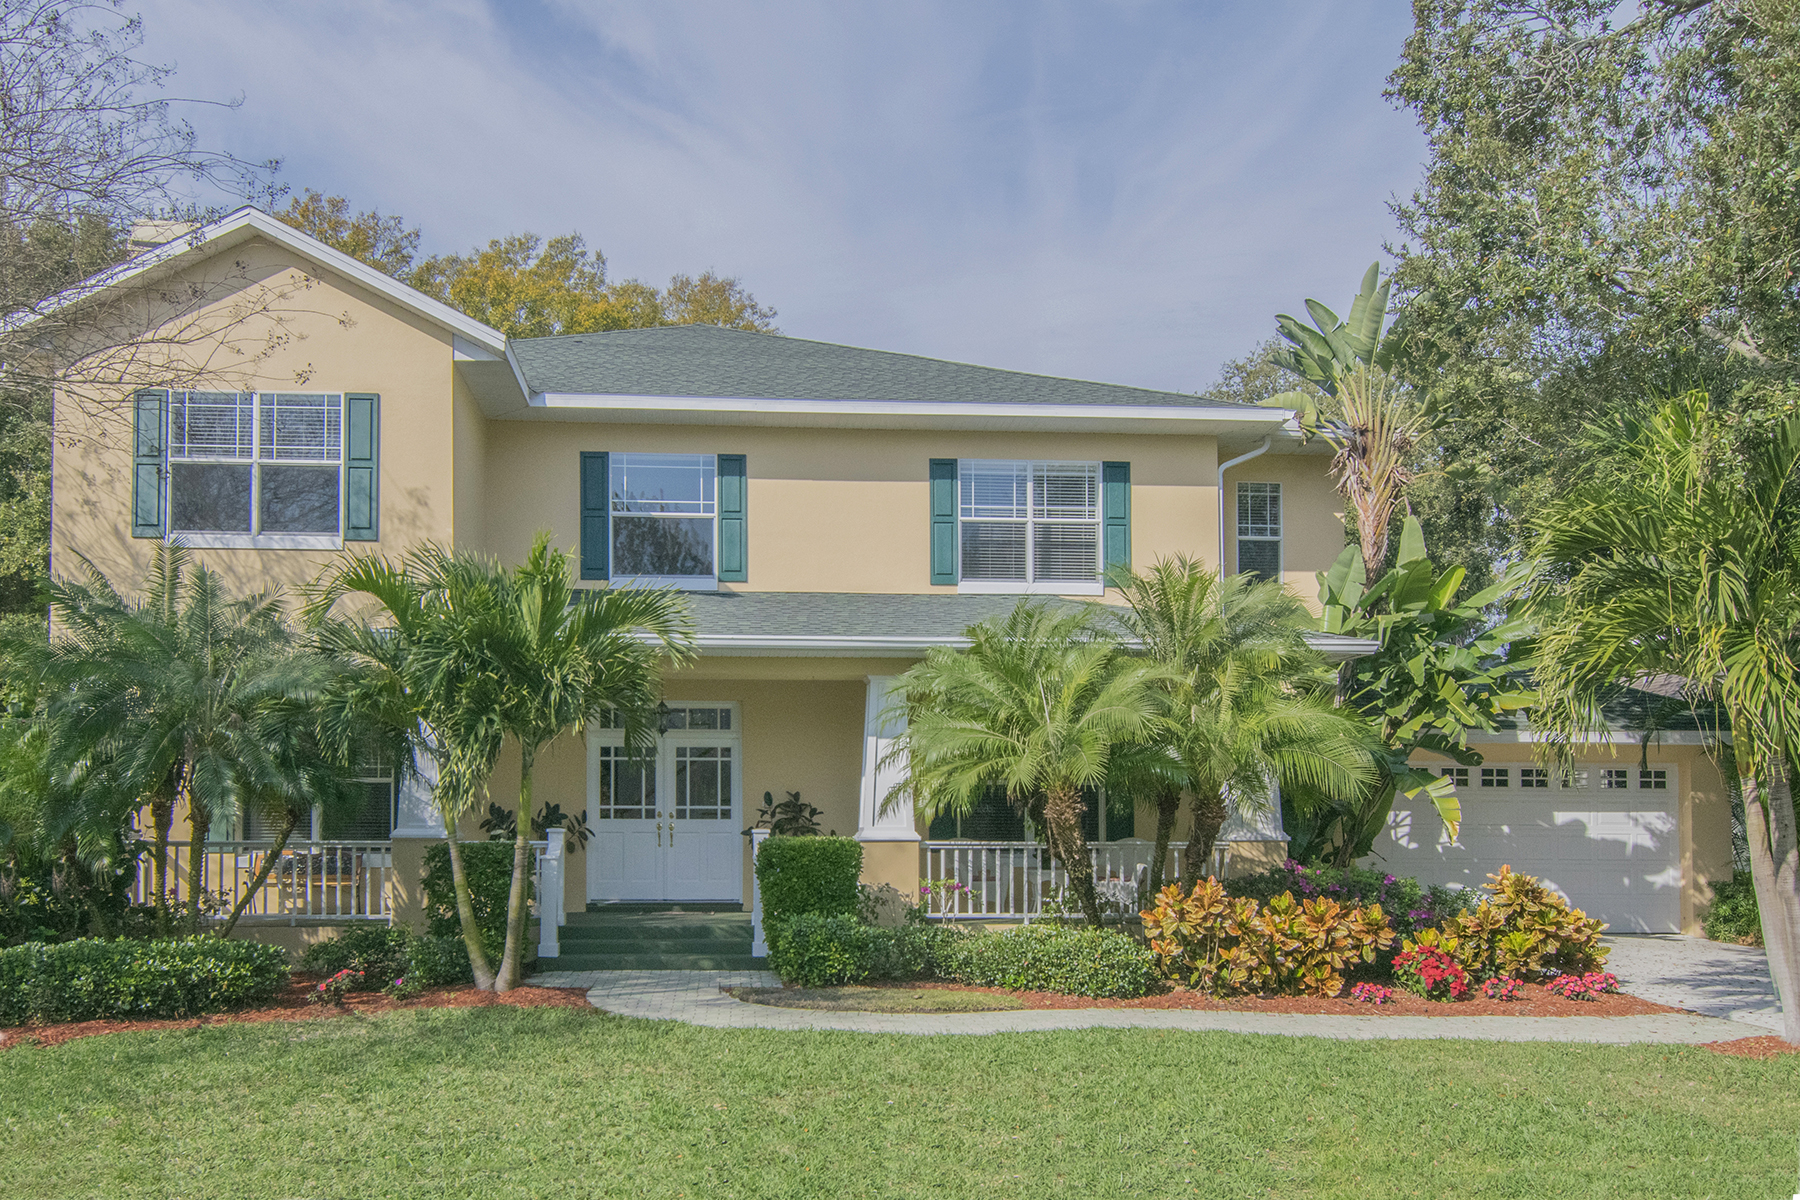 Single Family Home for Sale at SOUTH TAMPA 5405 S Crescent Dr Tampa, Florida 33611 United States